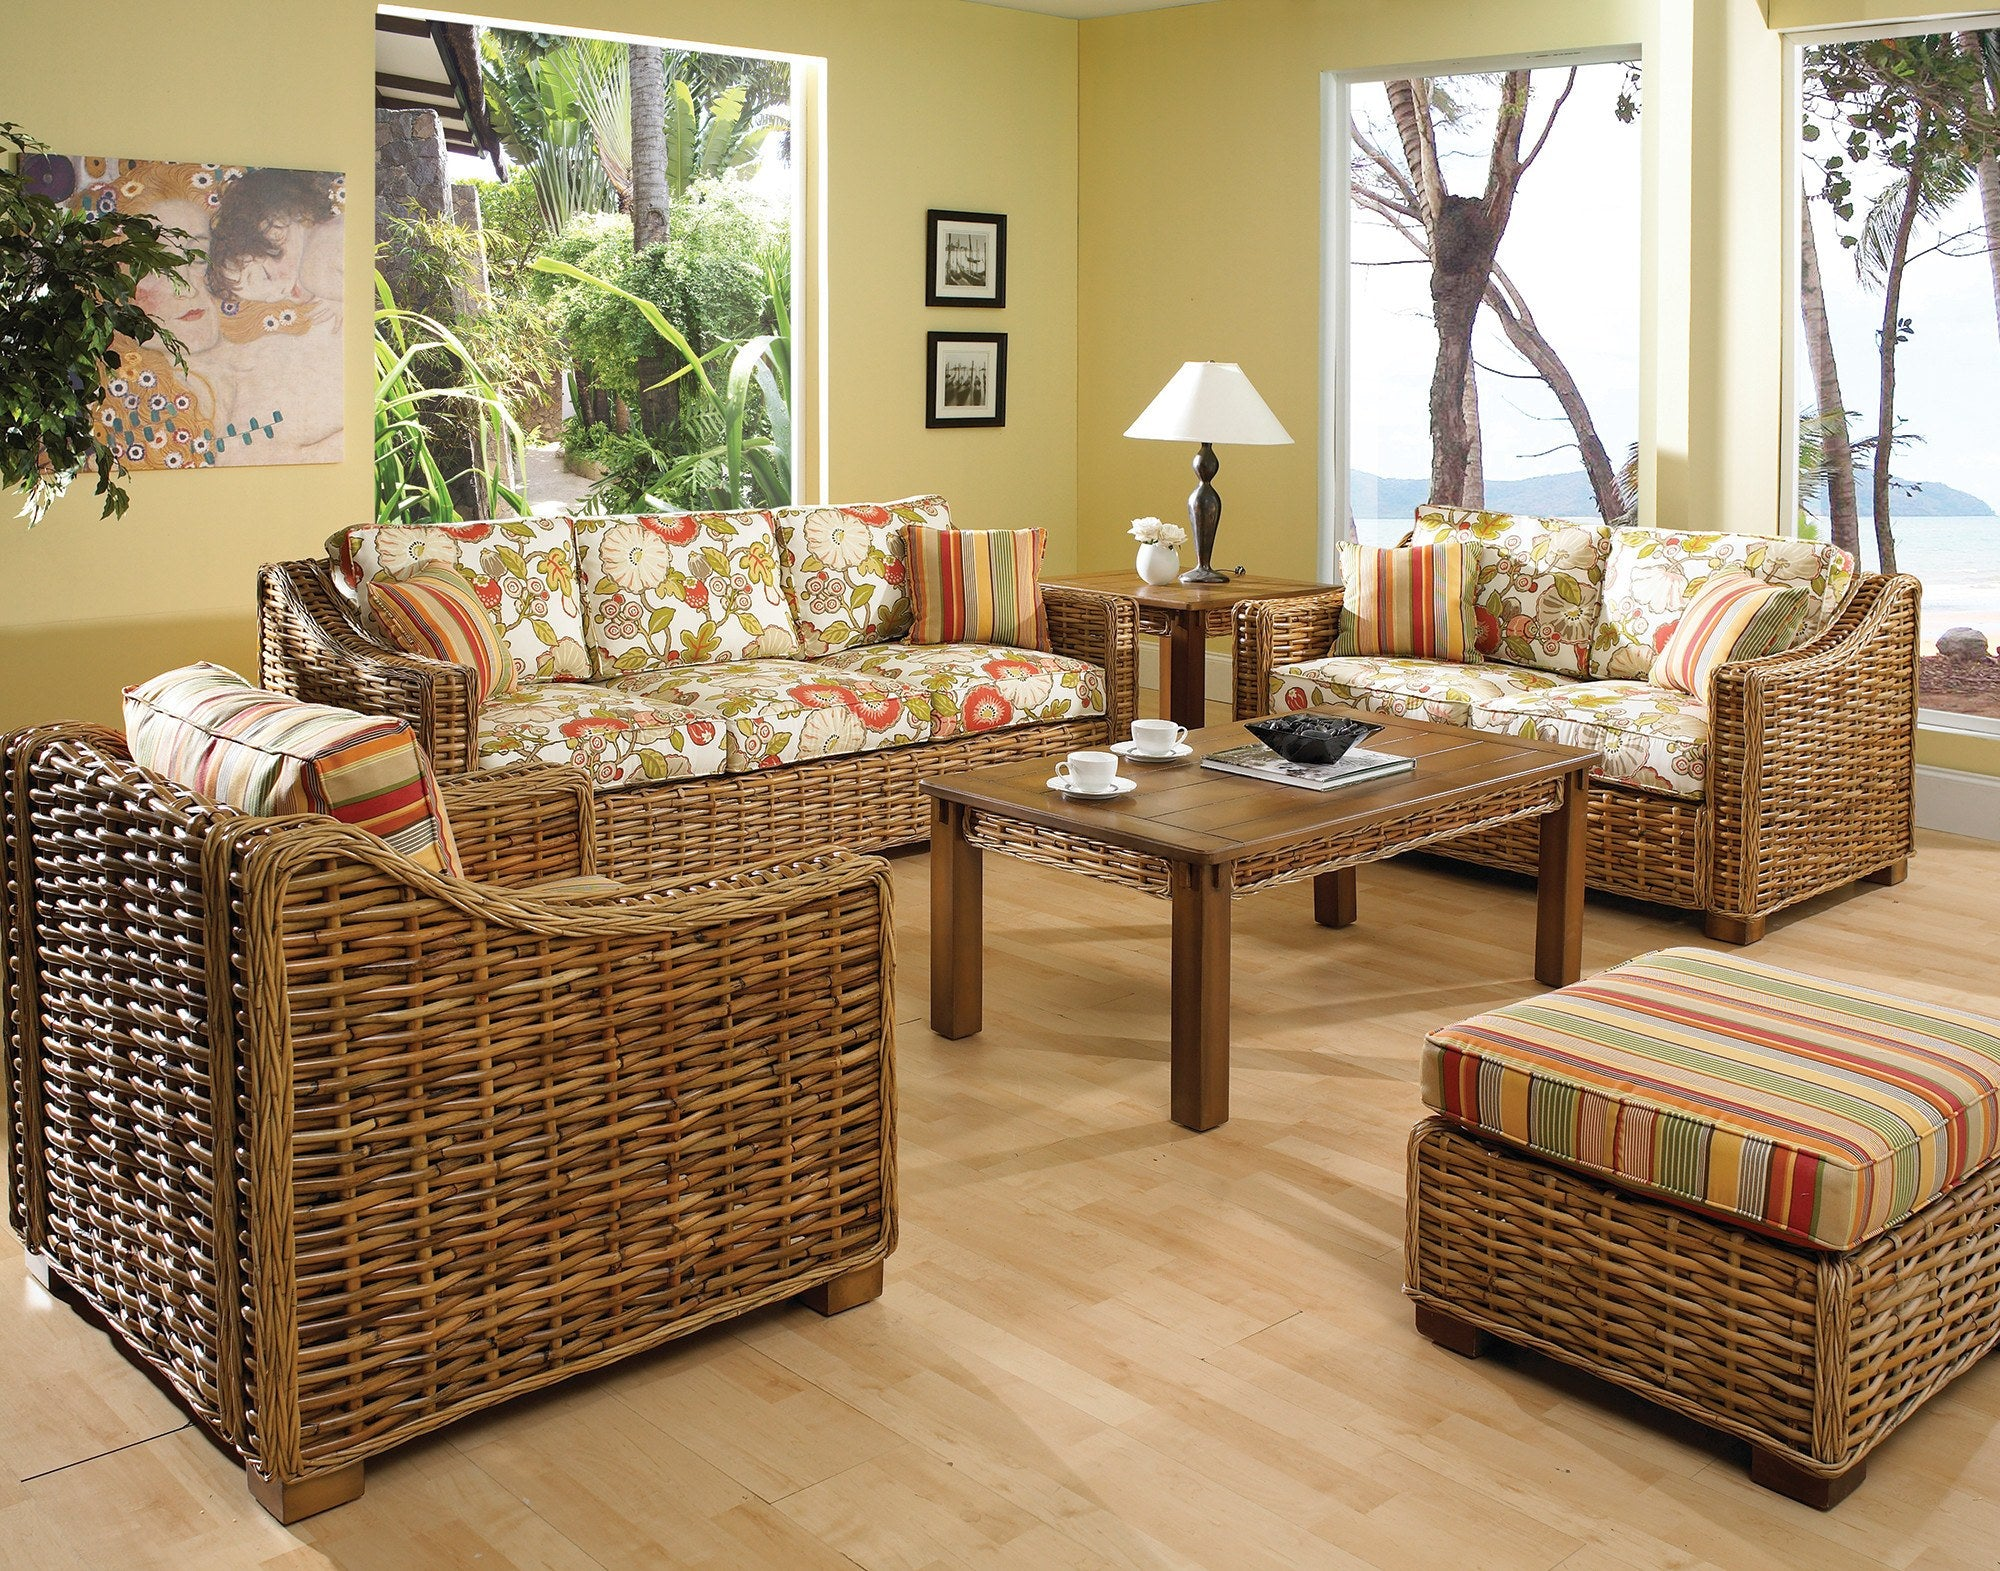 Designer Wicker & Rattan By Tribor Freeport Loveseat by Designer Wicker from Tribor Loveseat - Rattan Imports